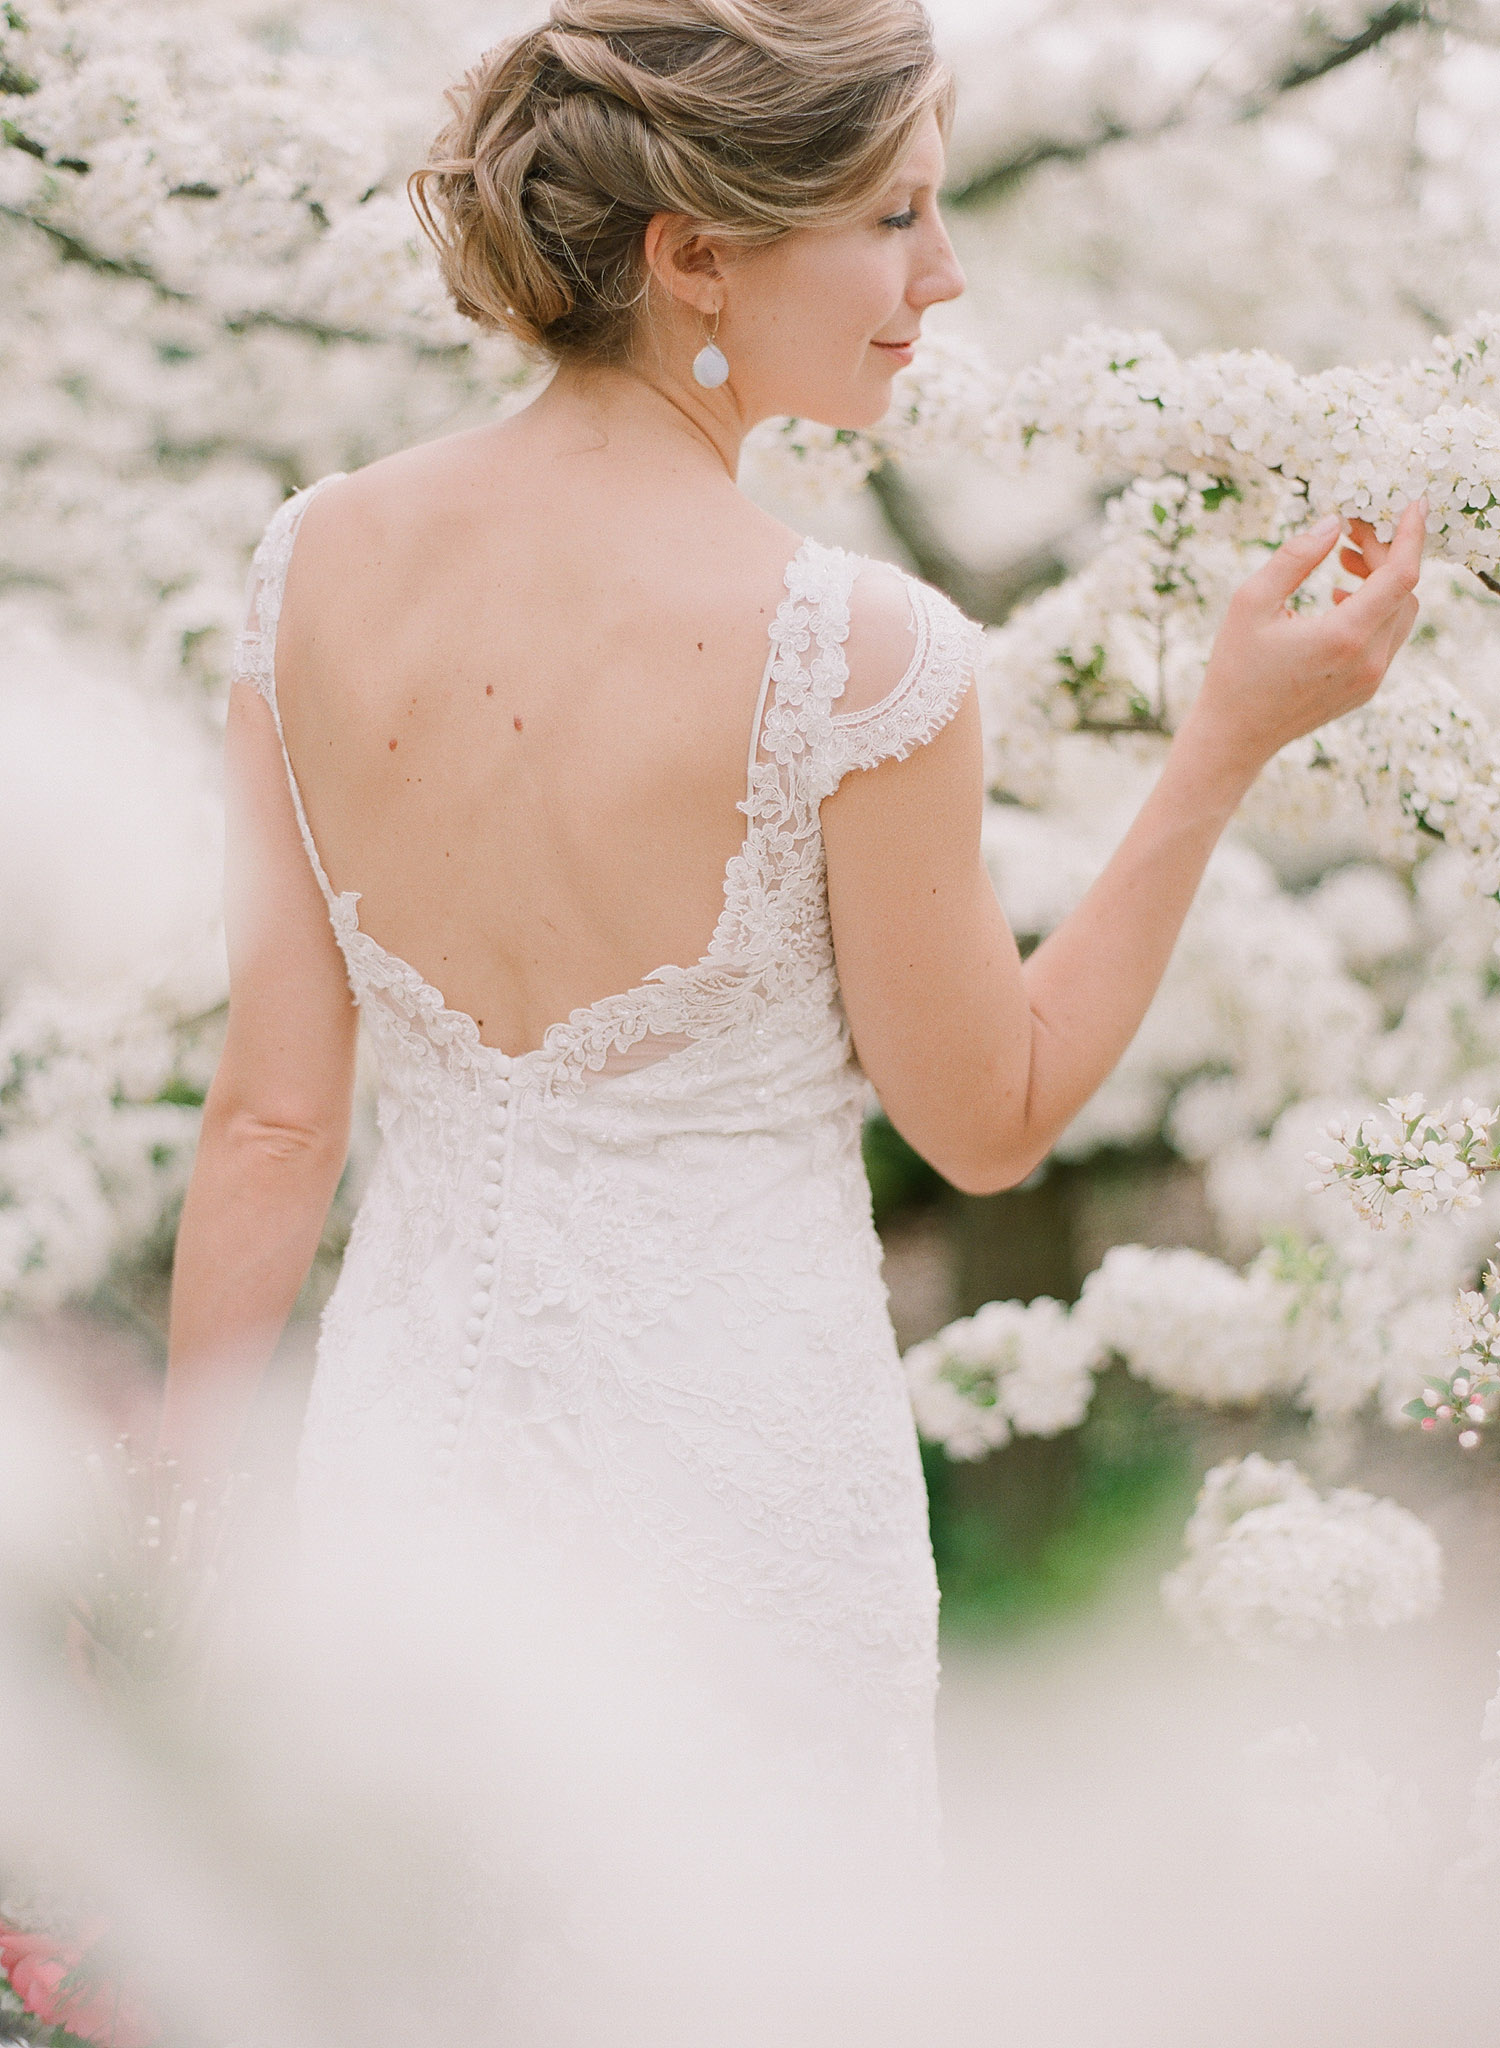 bride wears lace wedding dress with cap sleeves and smells the springtime blooms at her springtime wedding at Northwind Perennial Gardens in wisconsin while Destination wedding photographer Lexia Frank photographs her wedding on film